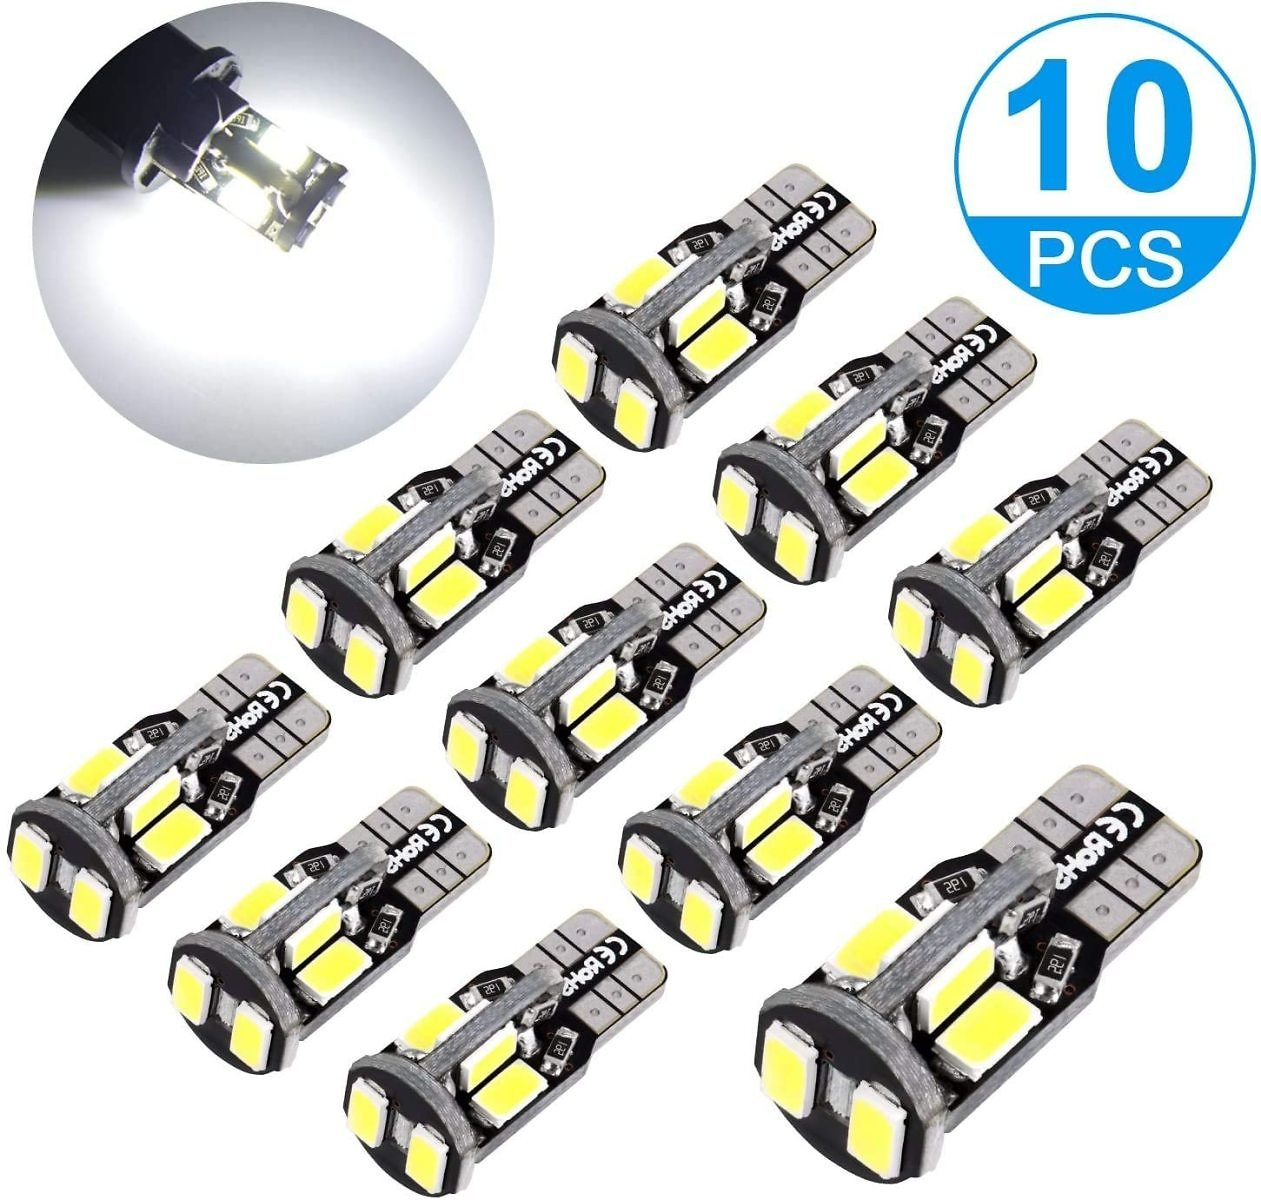 Super Bright 12V LED Light Bulbs, 5730 Chipset T10 Wedge W5W 168 194 2825 10-SMD Car Replacement Interior Lights for Dome Map Do